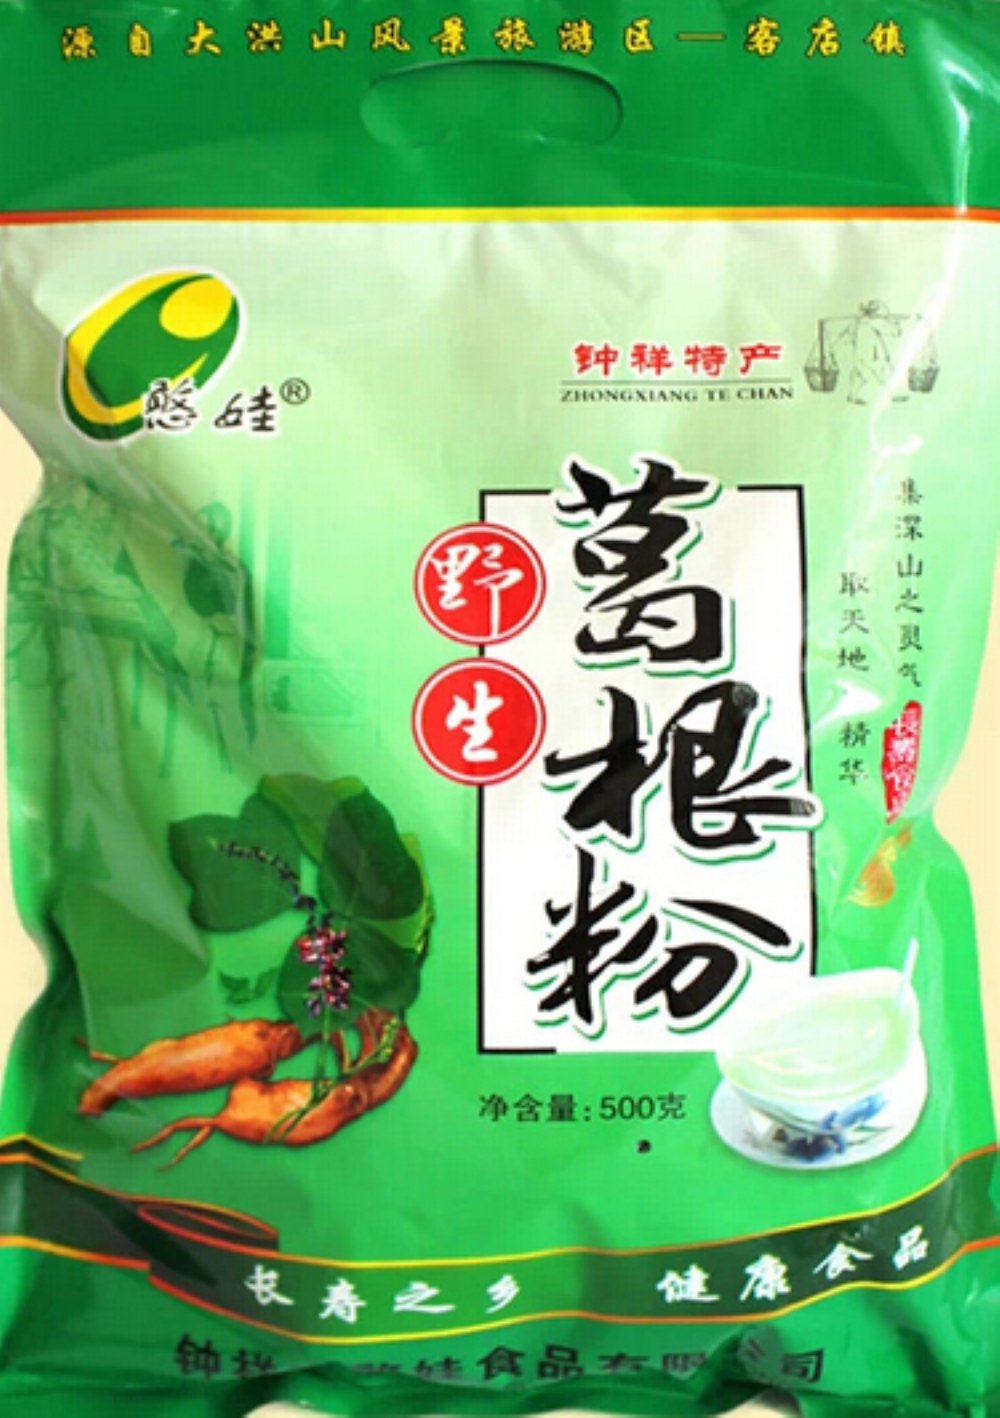 Helen Ou@hubei Specialty: Han Wa the Wild Root of Kudzu Vine Powder Pure and Natural and Organic Arrowroot Rich in Isoflavone Meal Replacement Powder 500g/17.64oz/1.10lb